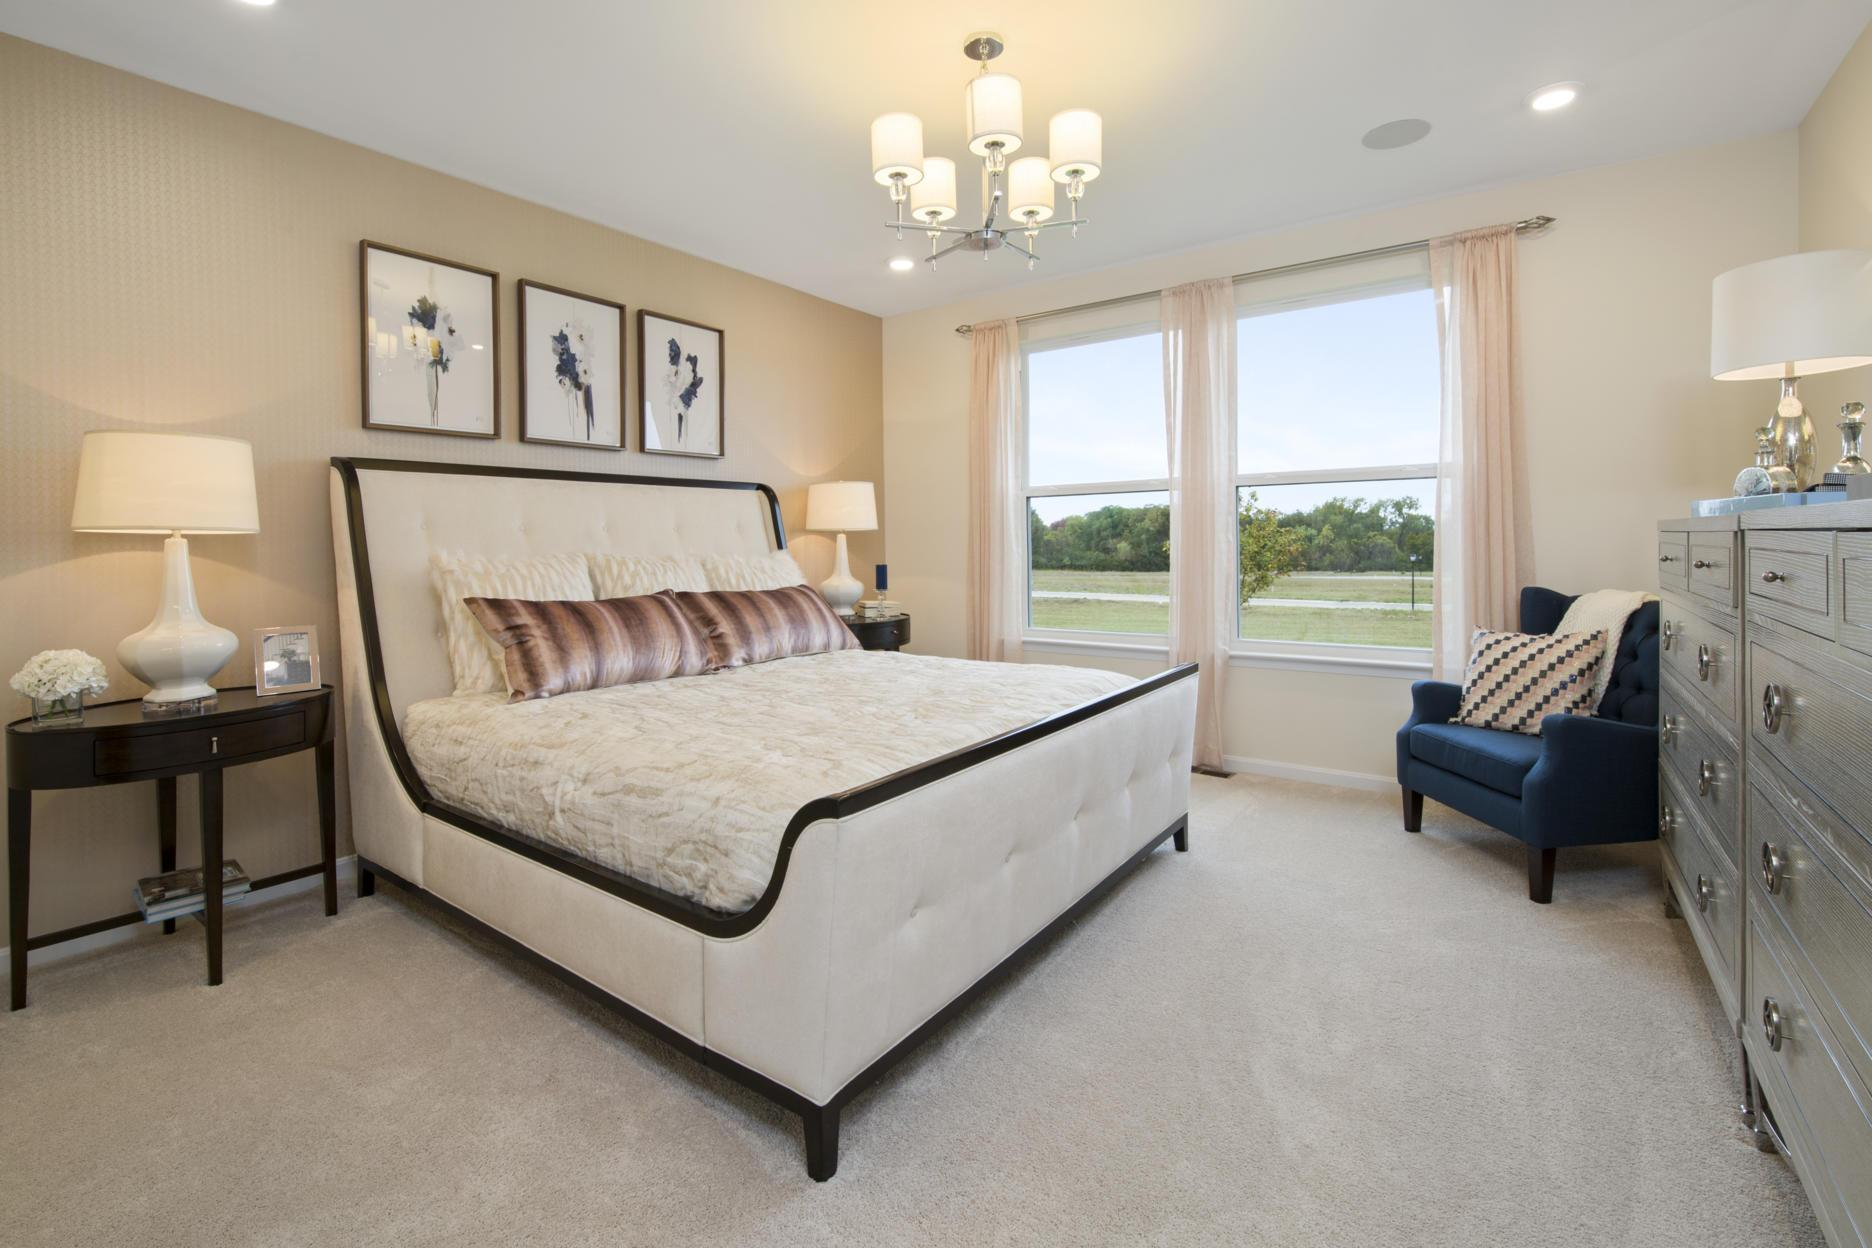 Bedroom featured in the Beachwood By Drees Homes in Cincinnati, KY